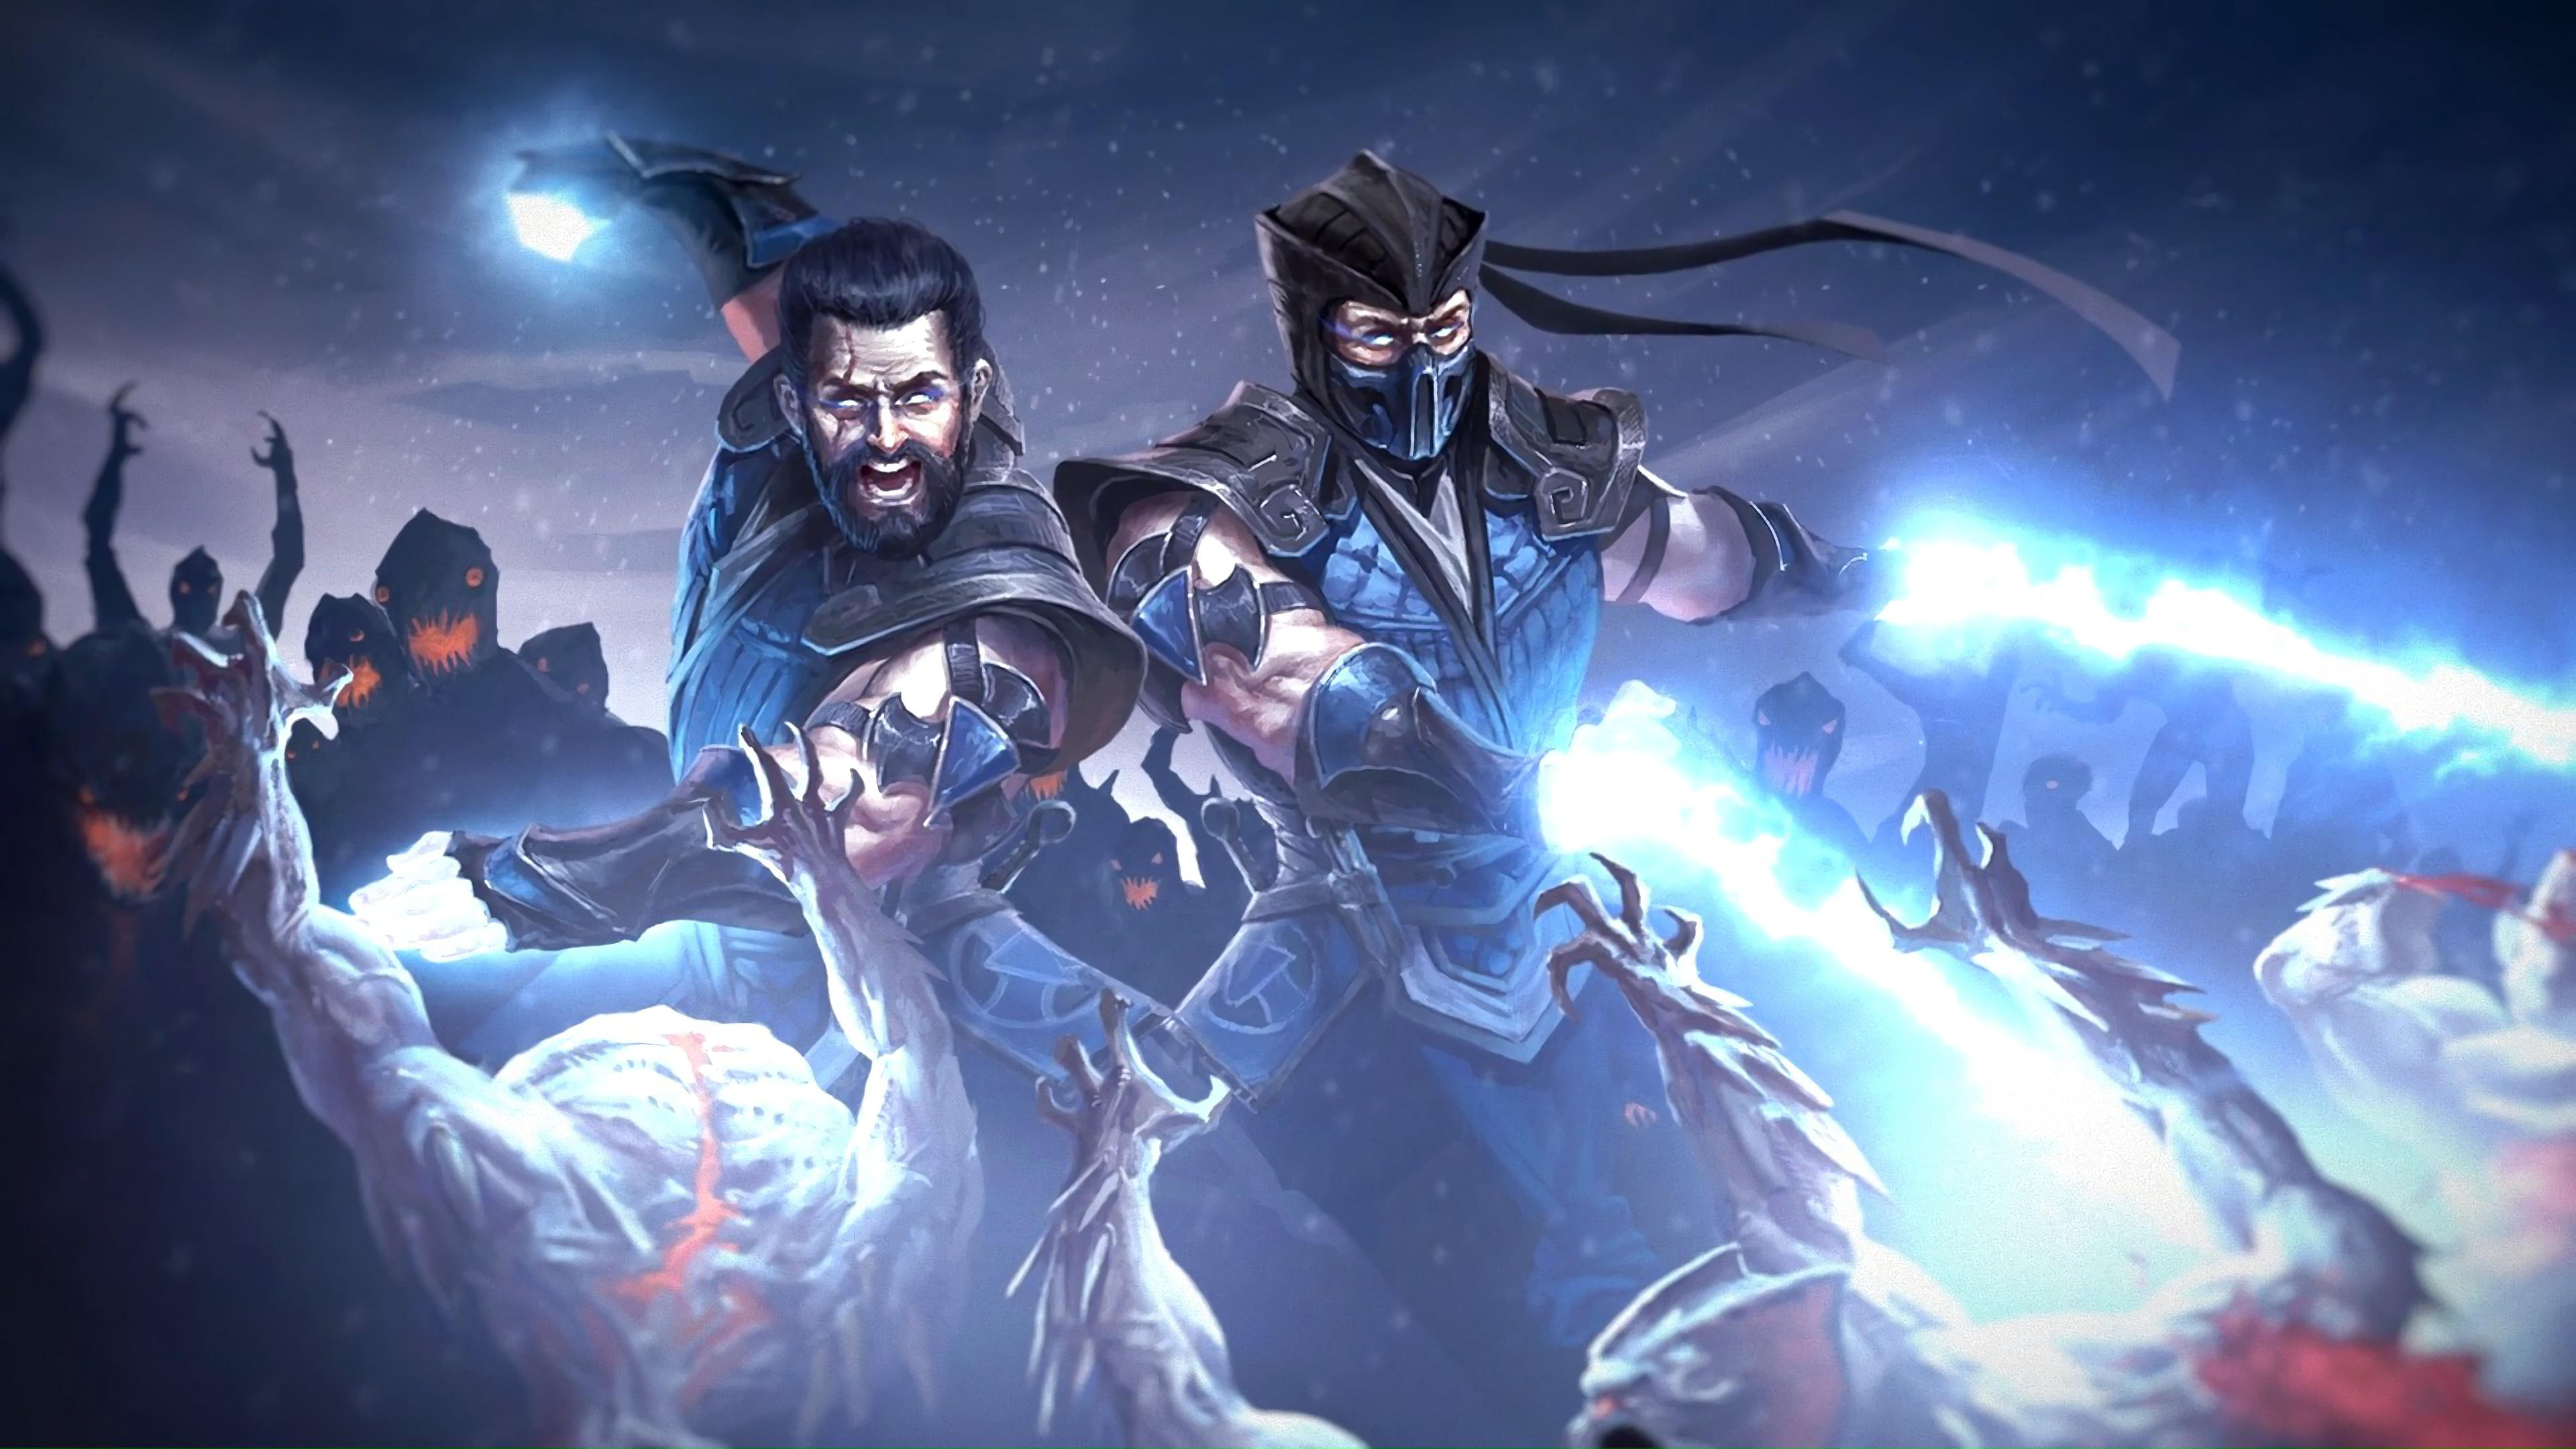 Sub Zero Mortal Kombat 11 4k Wallpaper 196